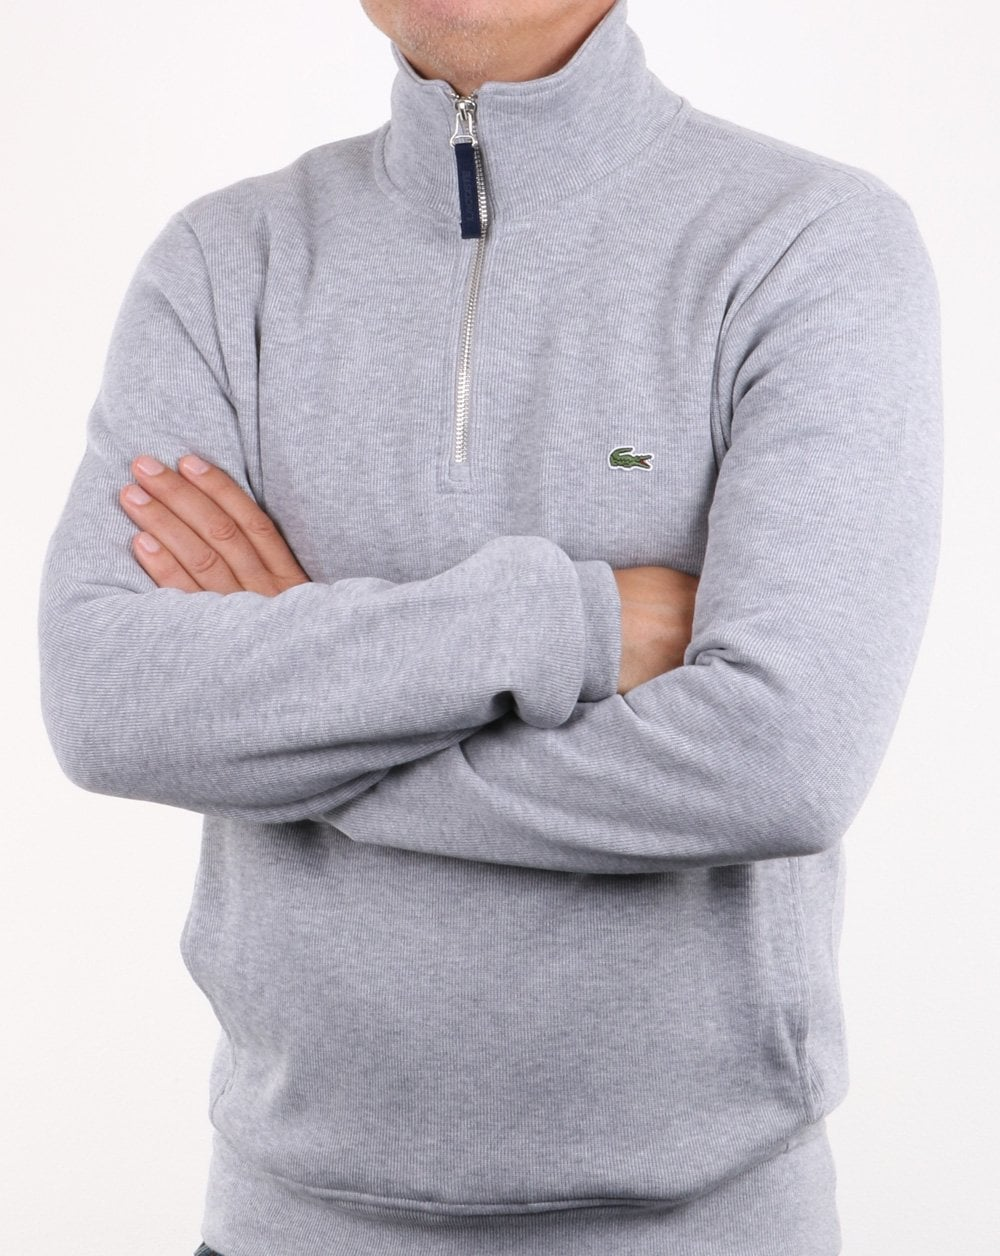 Lacoste Quarter Zip sweatshirt